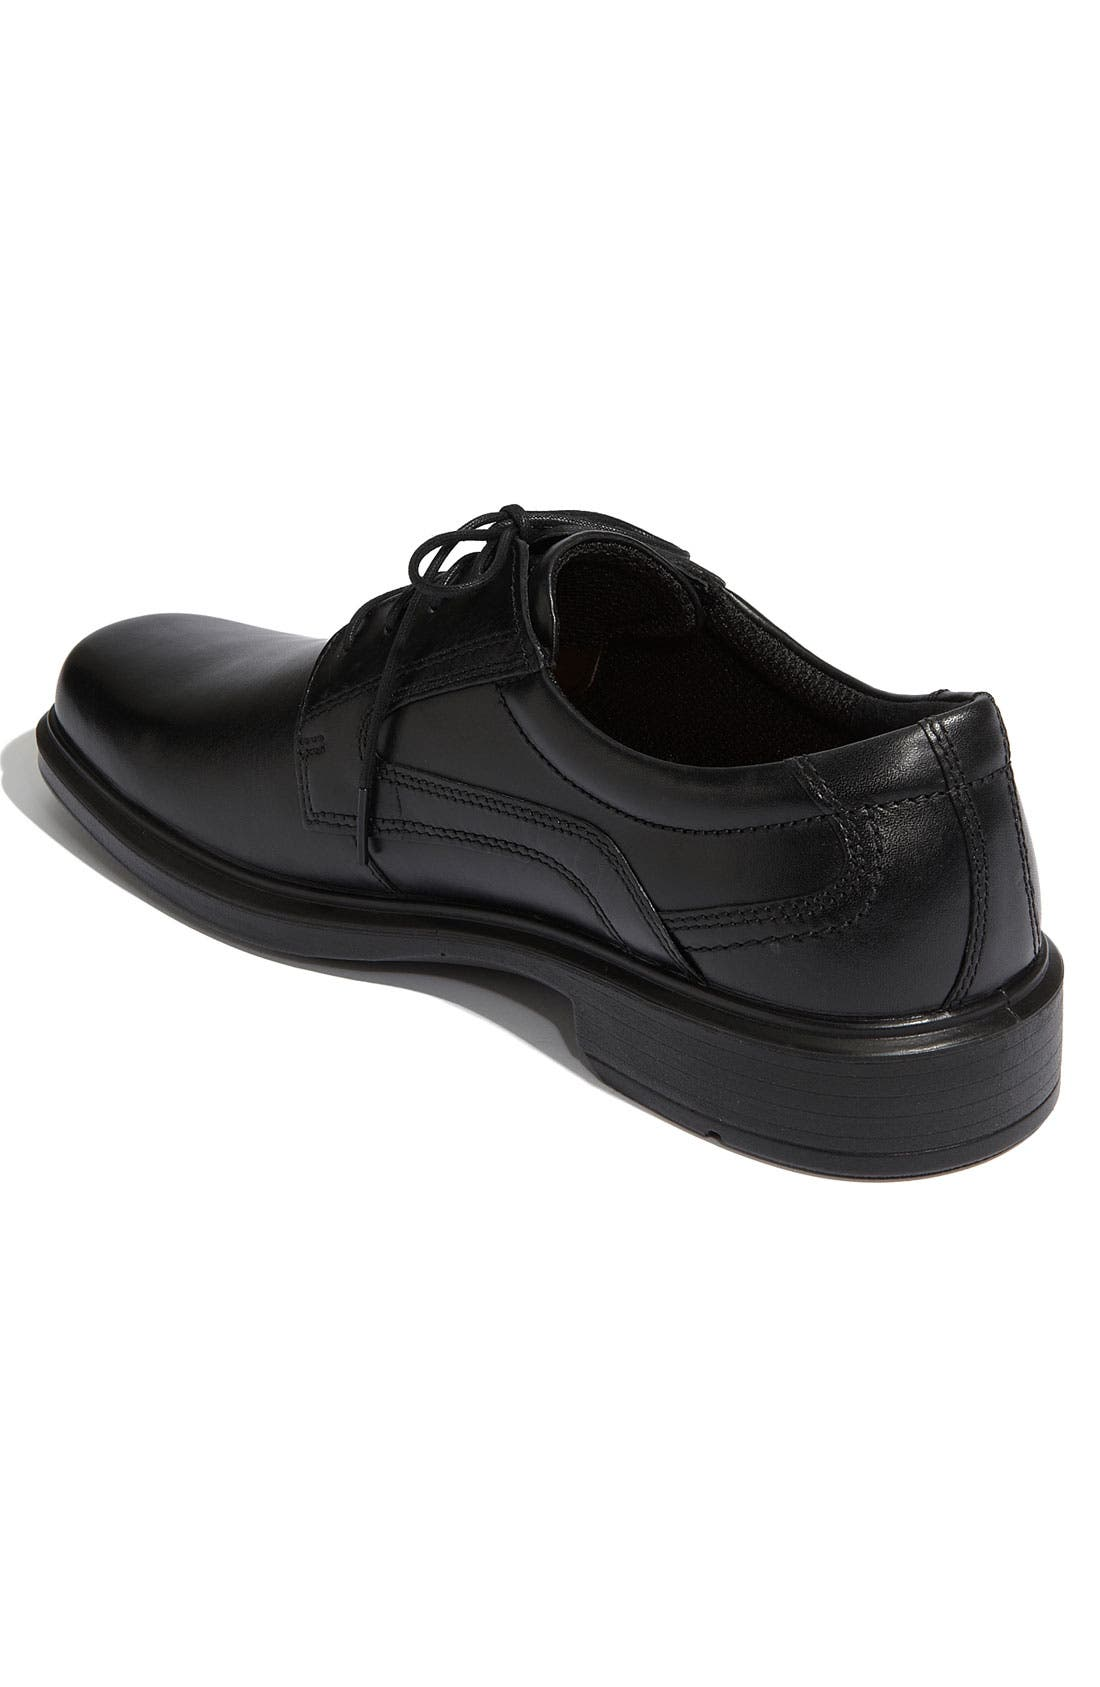 Alternate Image 2  - ECCO 'Helsinki' Plain Toe Oxford (Men)